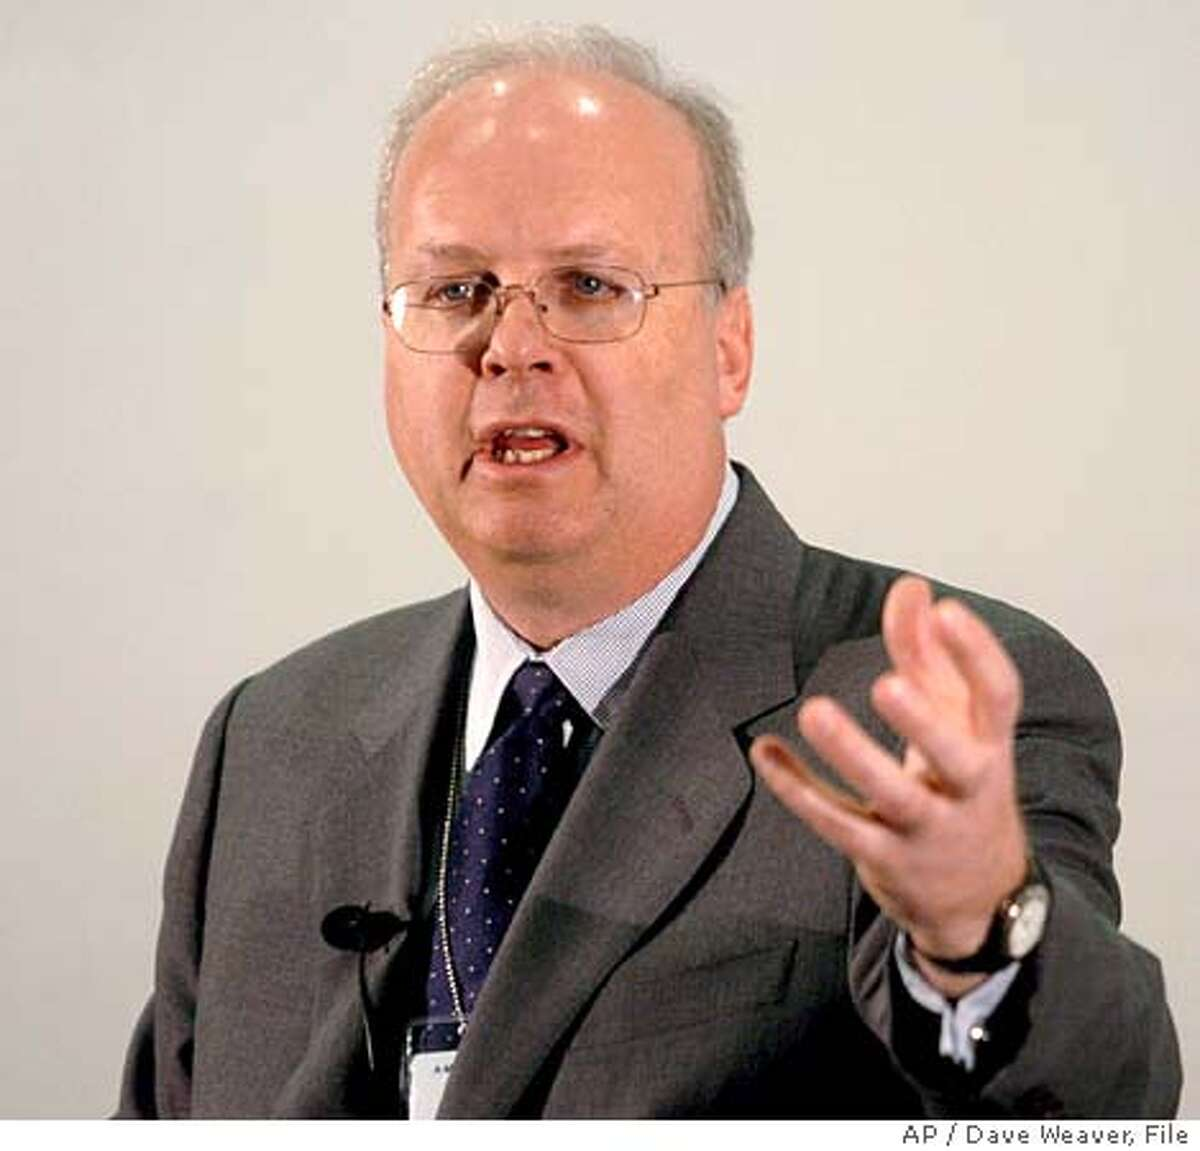 White House Chief of Staff Karl Rove addresses employees Friday July 8, 2005, at Ameritrade's Bellevue, Neb, office. Rove is in Nebraska for a fundraiser in Omaha. (AP Photo/Dave Weaver) Ran on: 07-17-2005